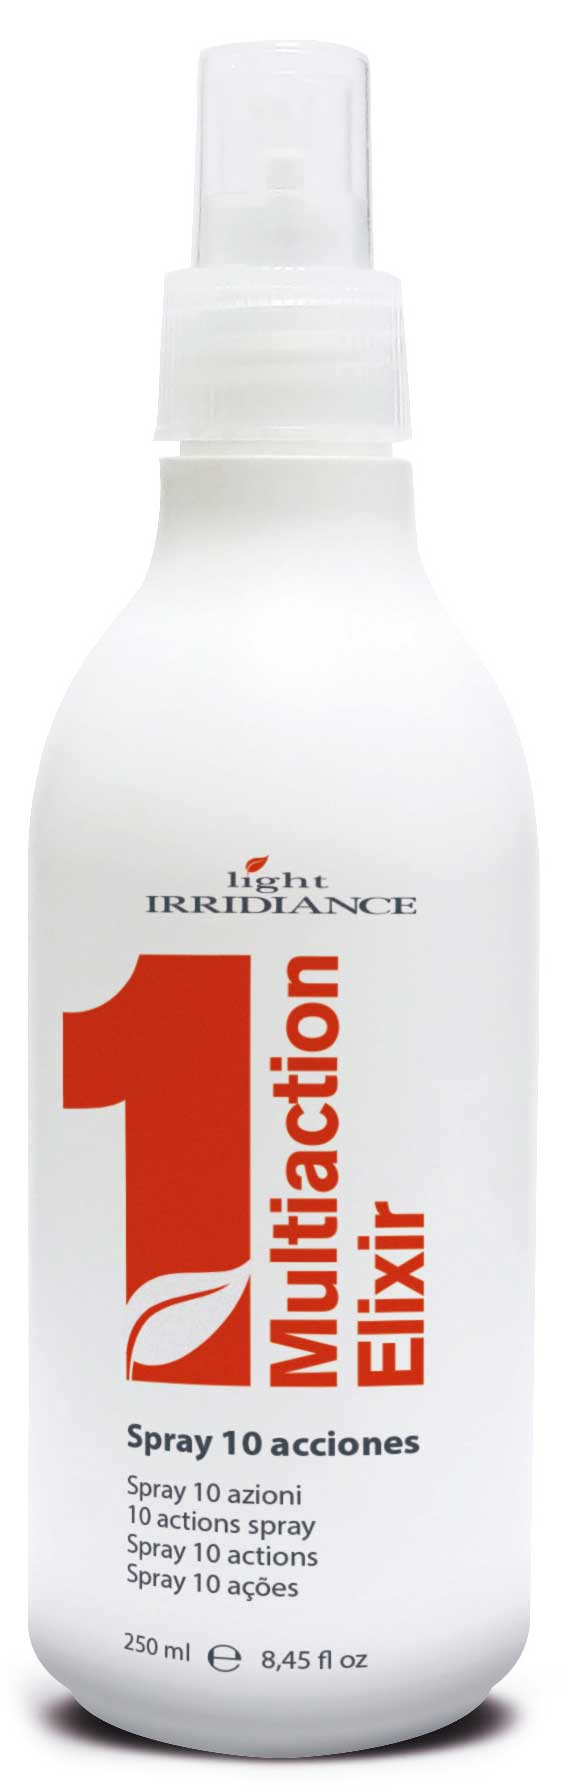 Multiaction Elixir 10 en 1 de Light Irridiance